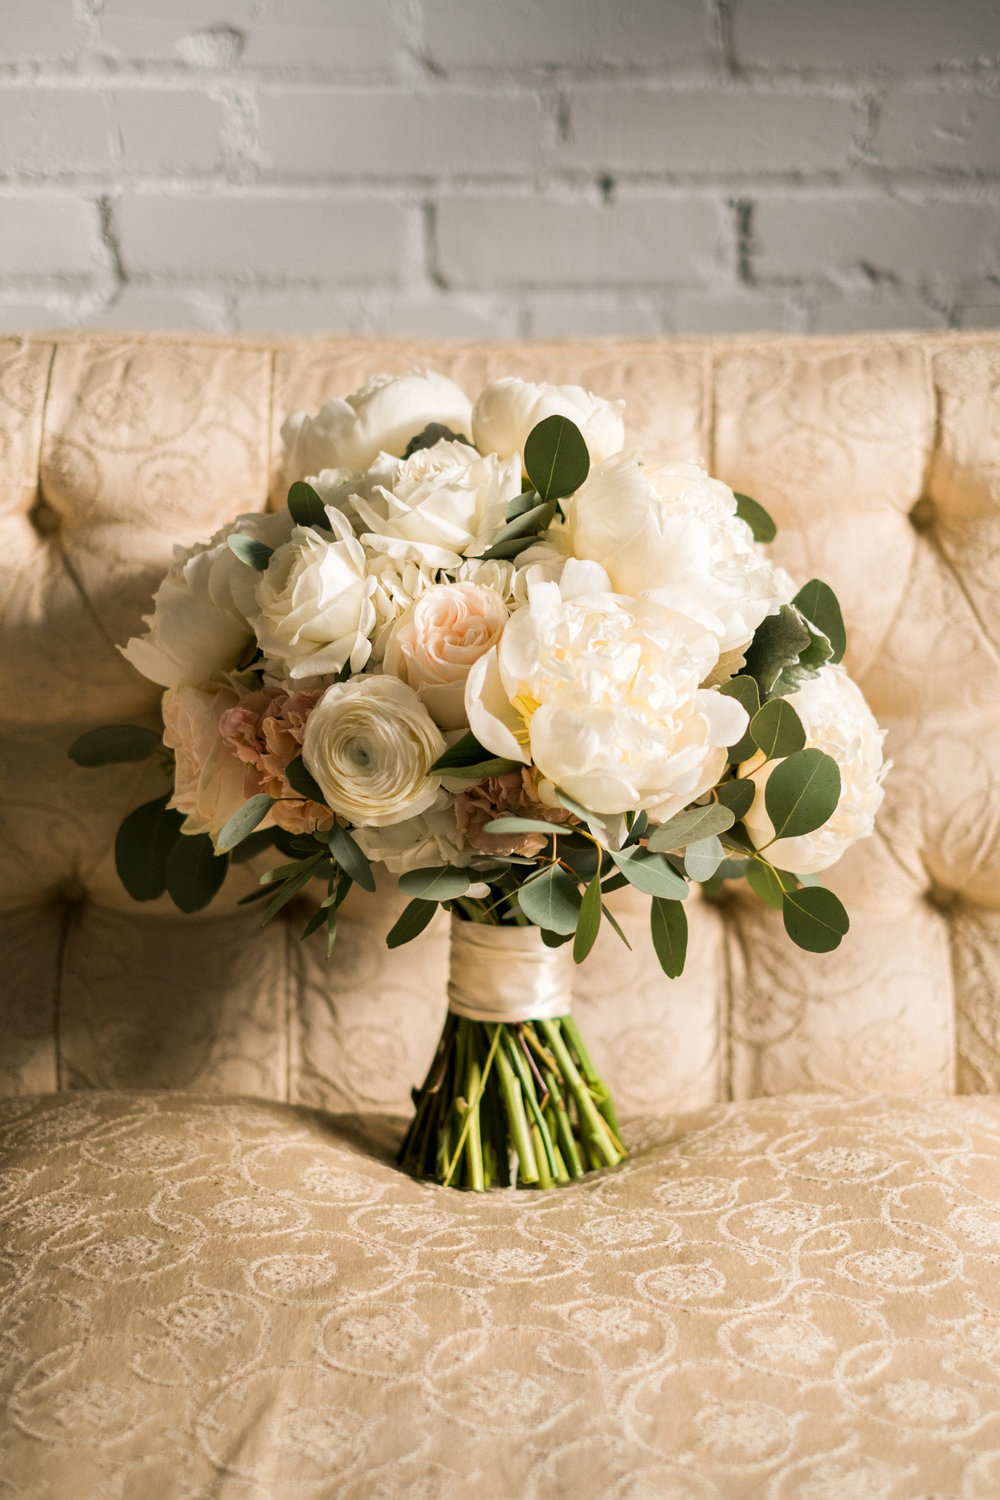 bloom designs by kate kuepers bride's bouquet